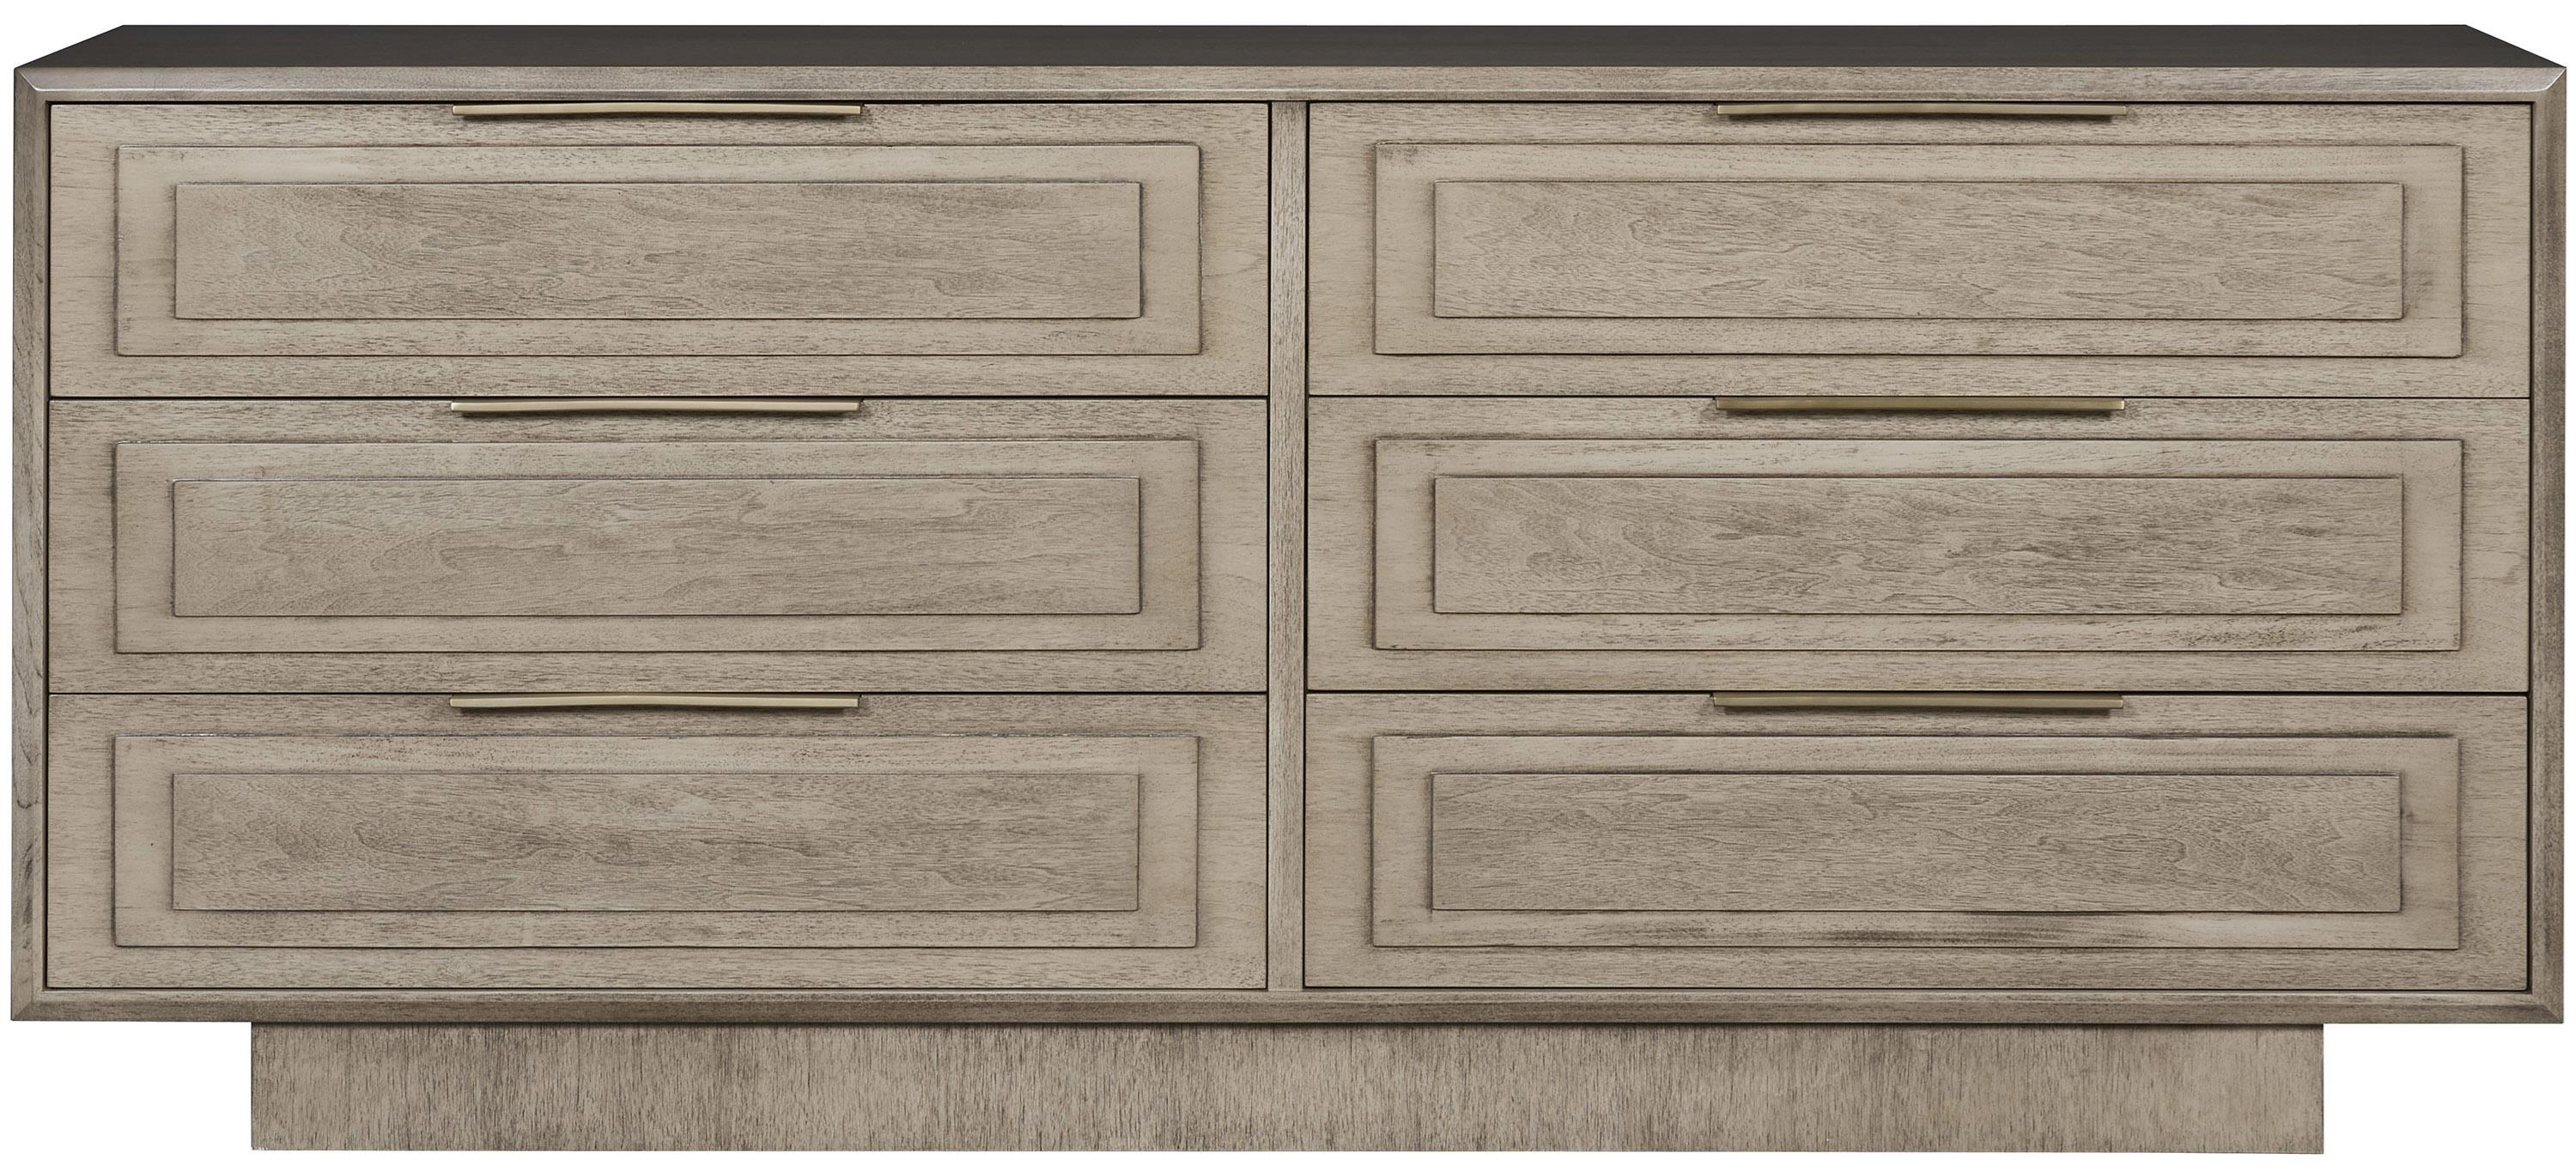 Bowers - Michael Weiss Dresser by Vanguard Furniture at Baer's Furniture